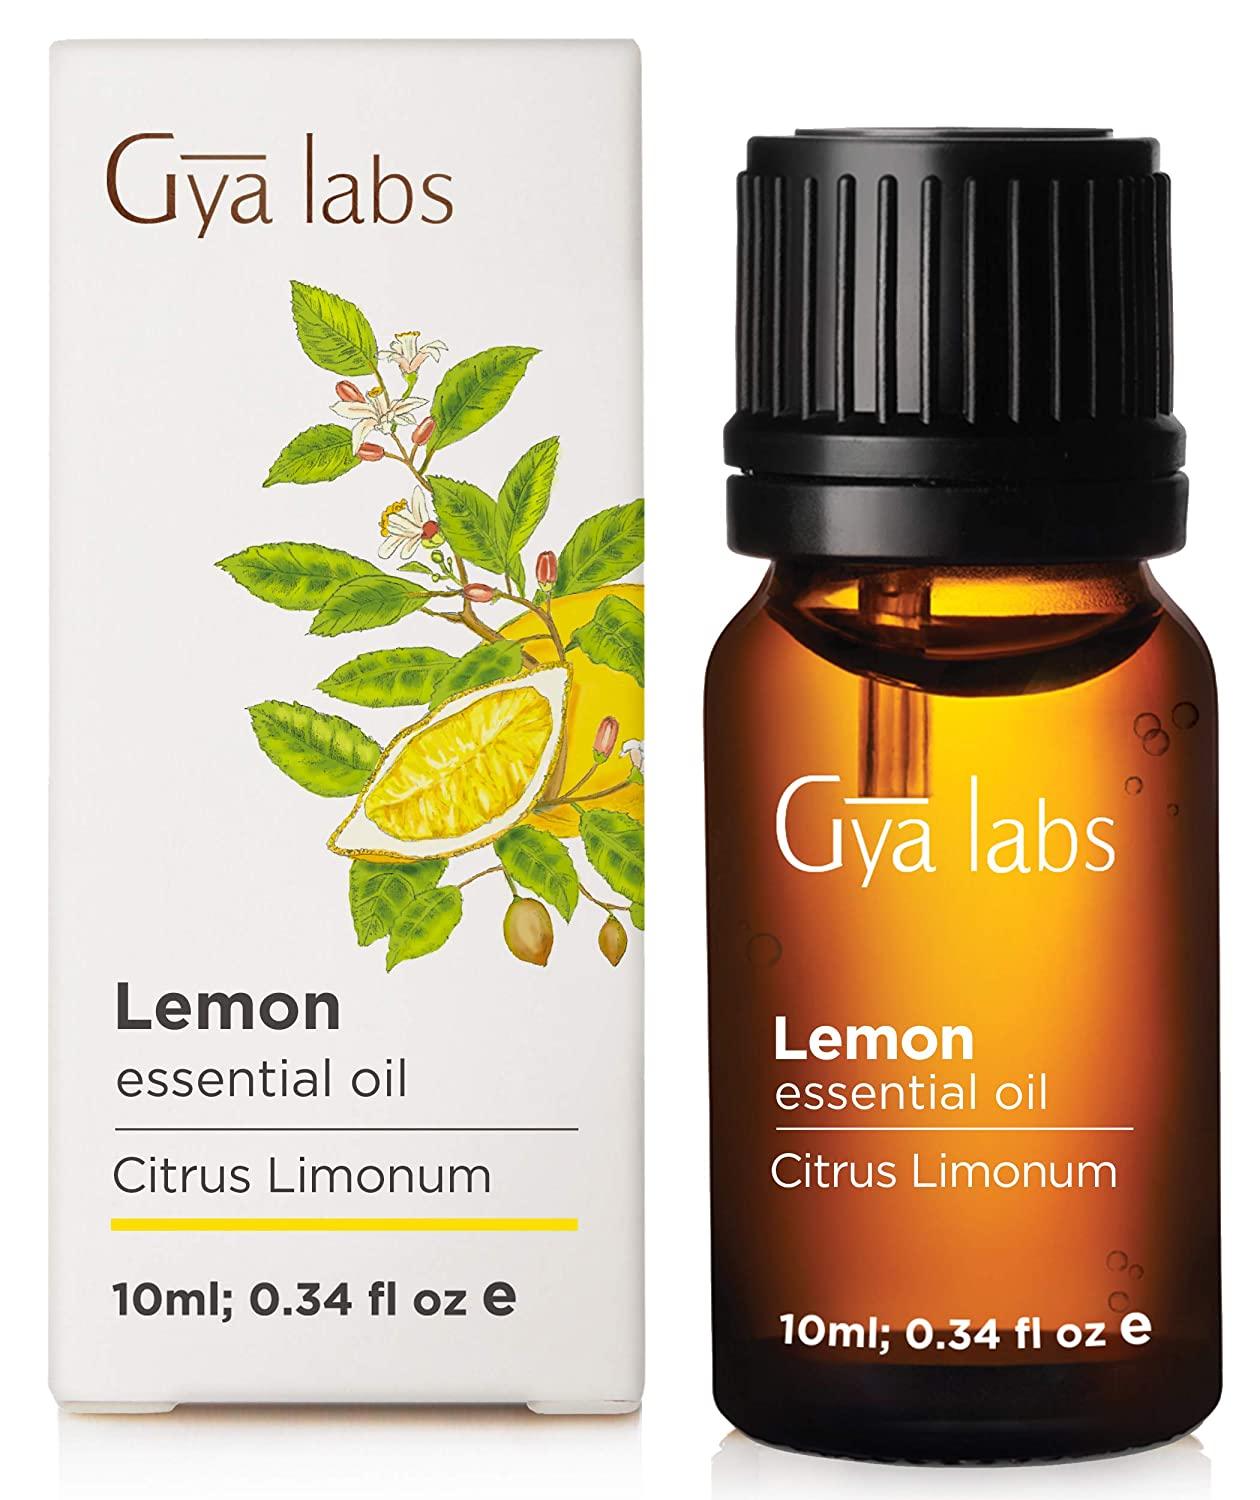 Lemon Essential Oil for Skin, Diffuser, Aromatherapy and Soap Making (10ml) - 100% Pure Therapeutic Grade - Gya Labs